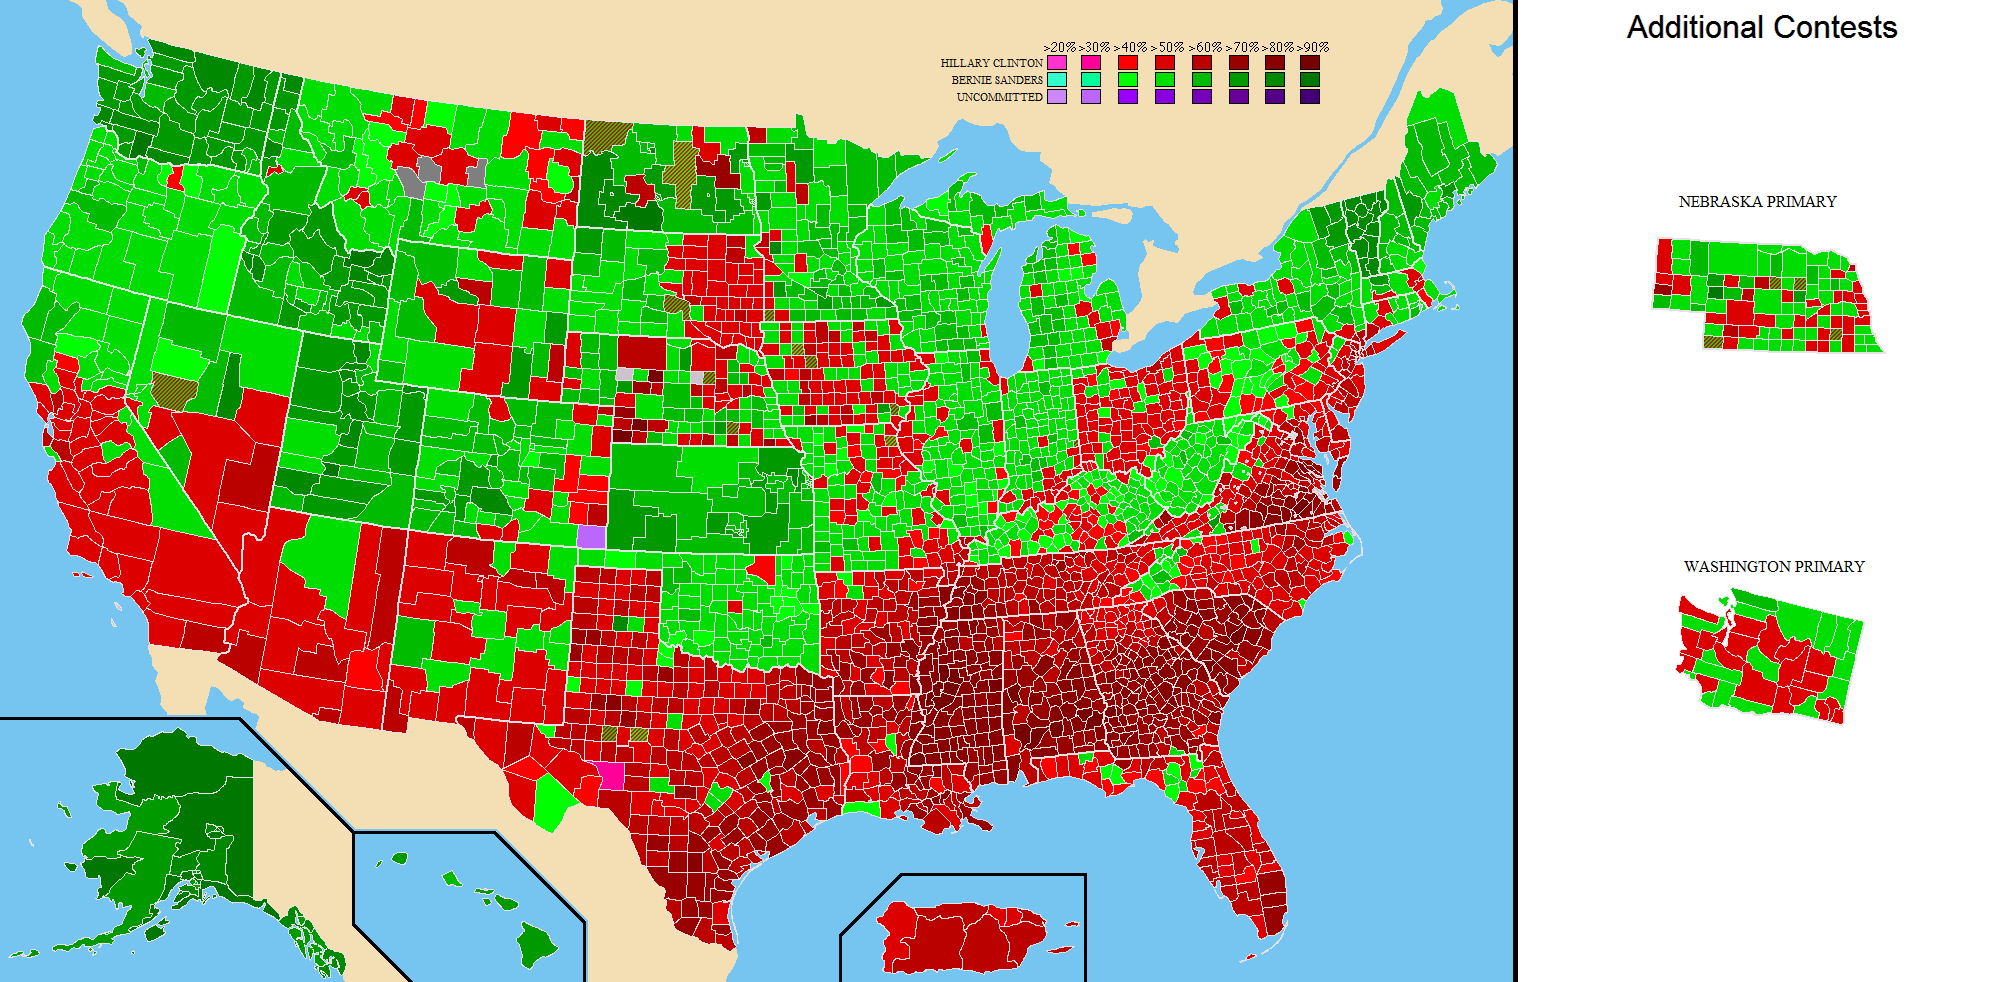 National Presidential Primary County and State Maps (1912-2016)